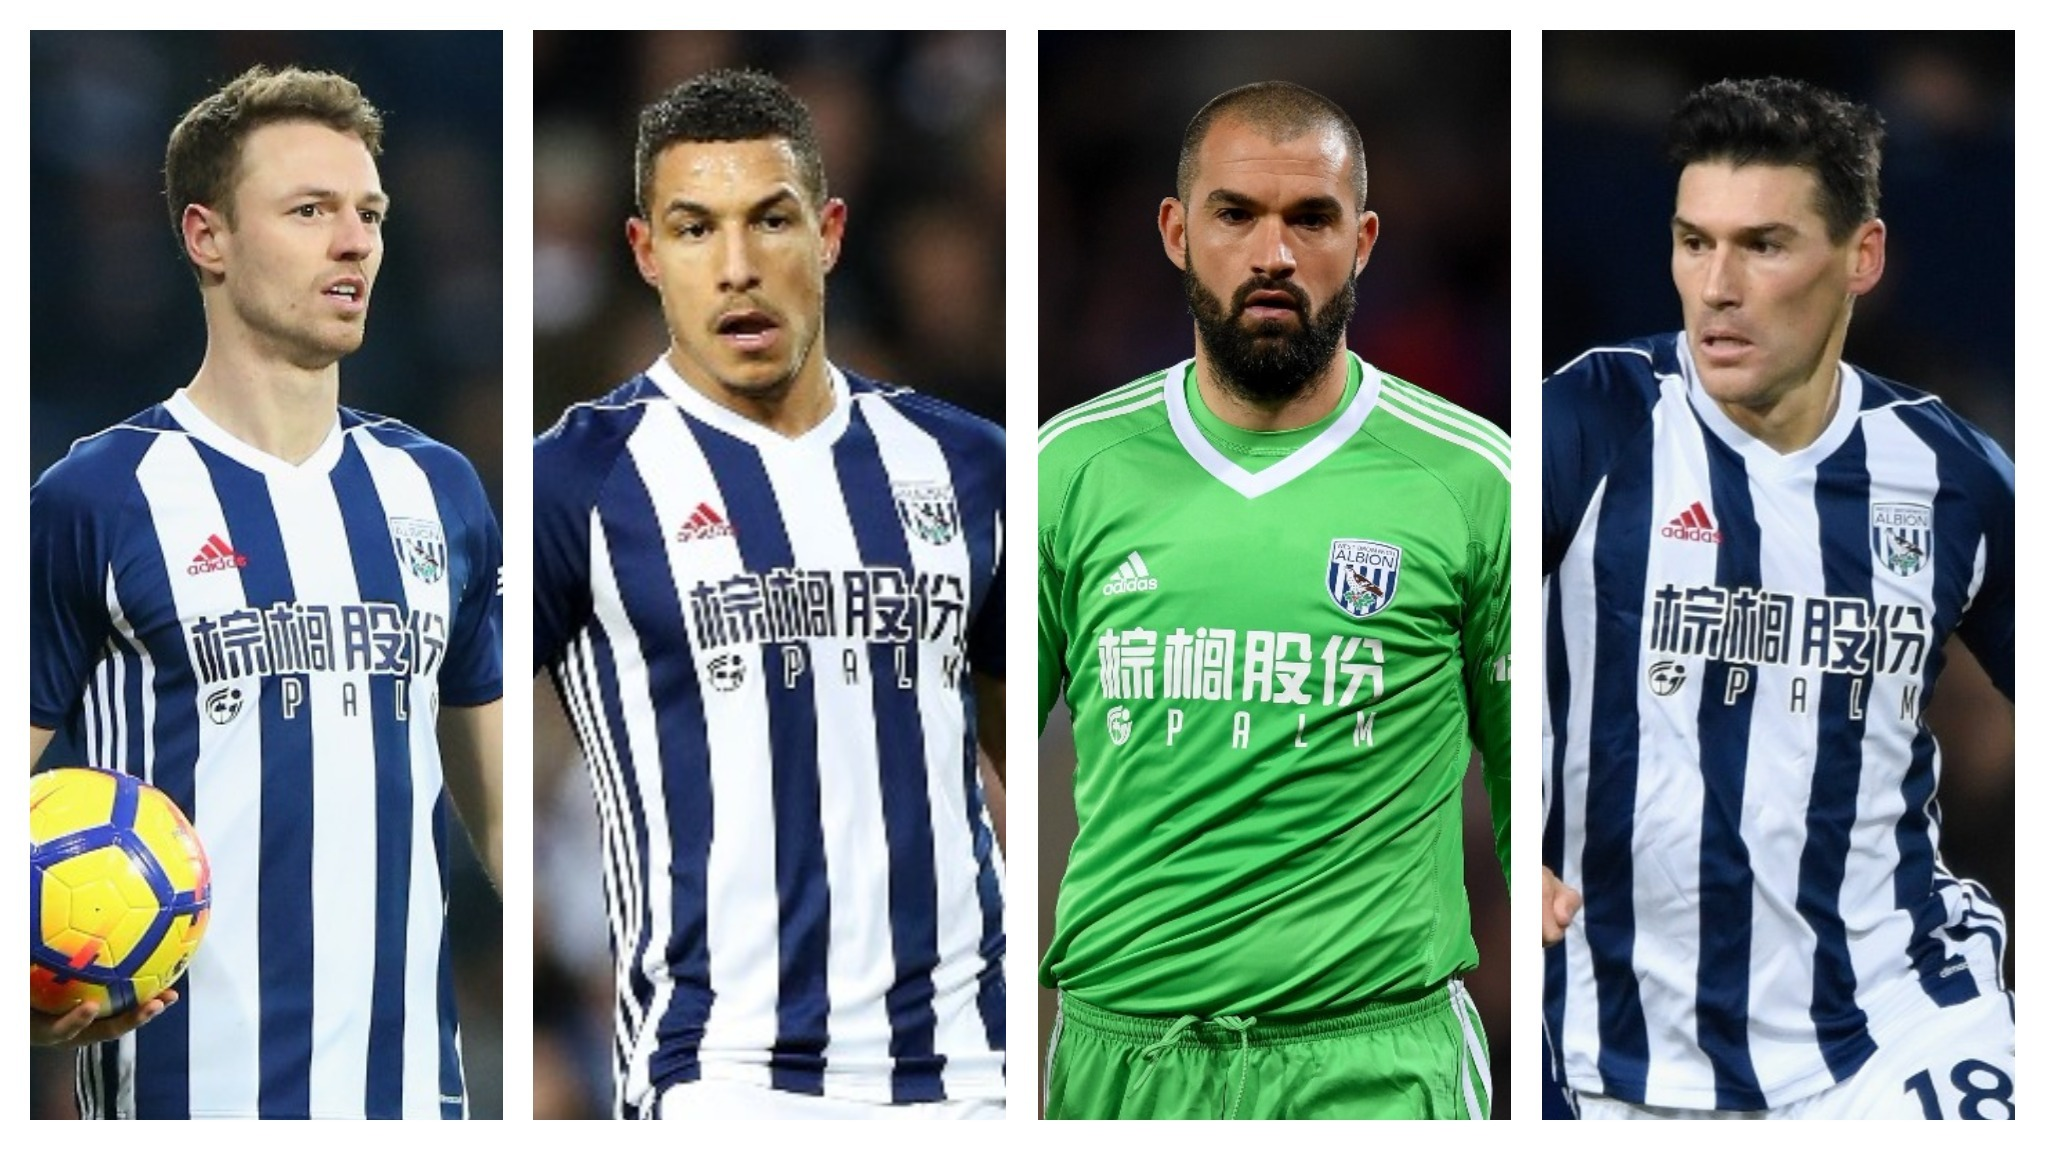 West Brom players set to avoid legal action